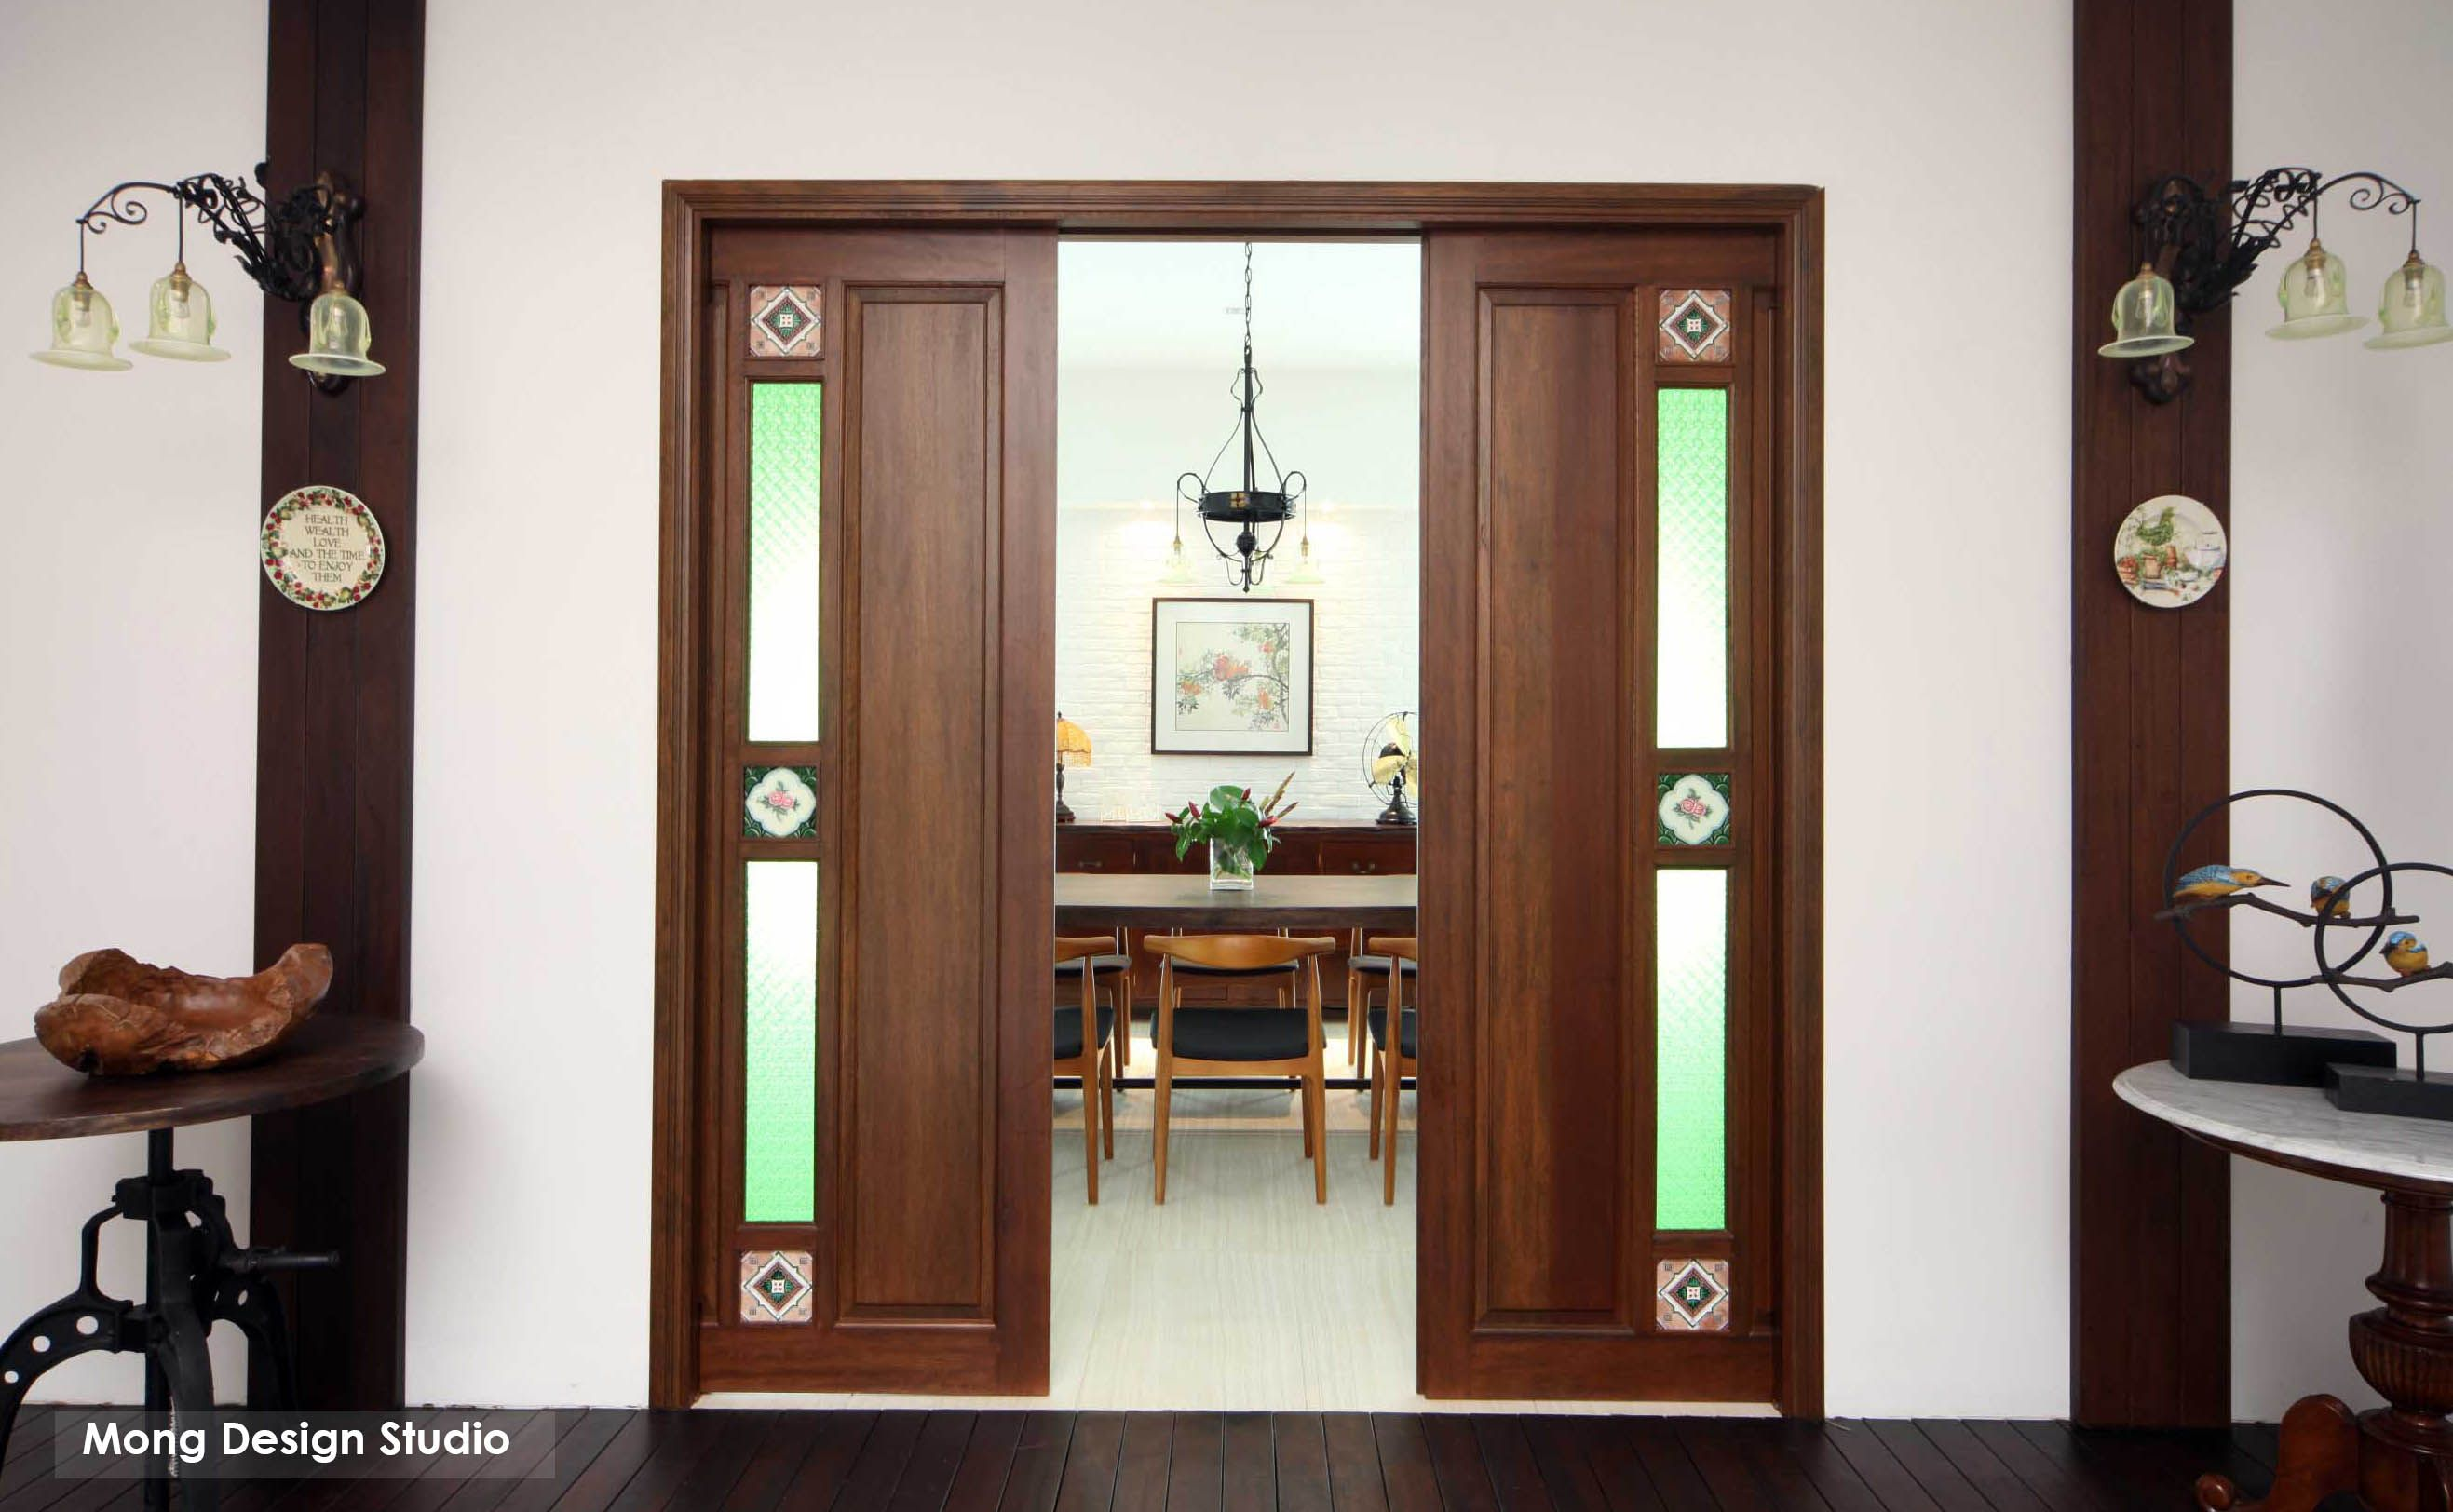 Dining Room Greeted With A Double Sliding Door Antique Peranakan Tiles And Green Stain Glass